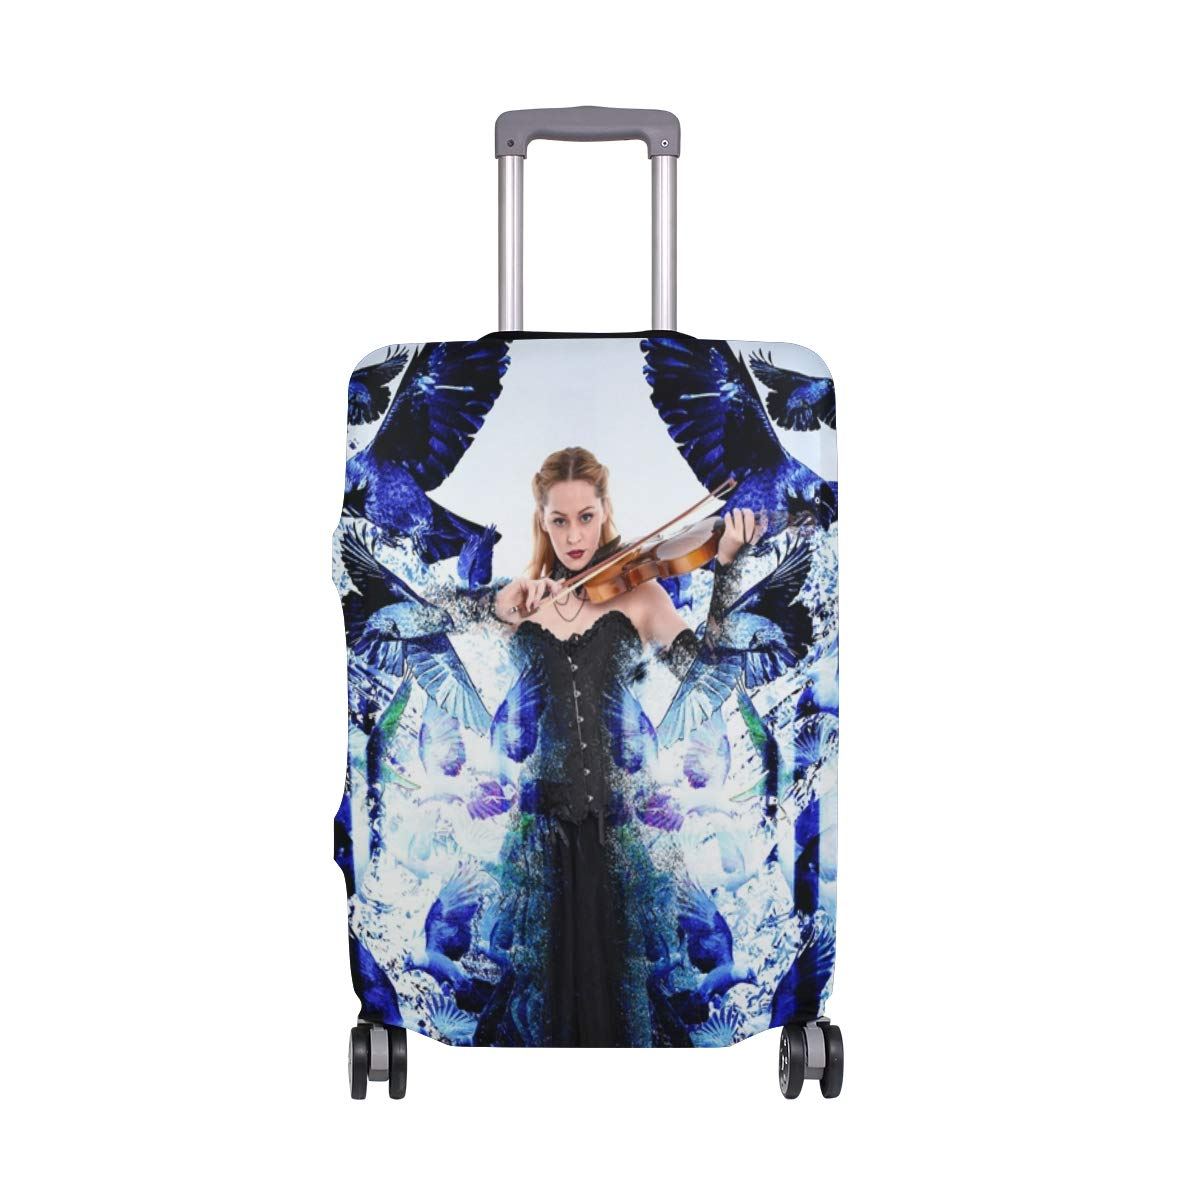 Girl Magic Play Violin Blue Birds Creative Picture suitcase cover elastic suitcase cover zipper luggage case removable cleaning suitable for 29-32 trunk cover